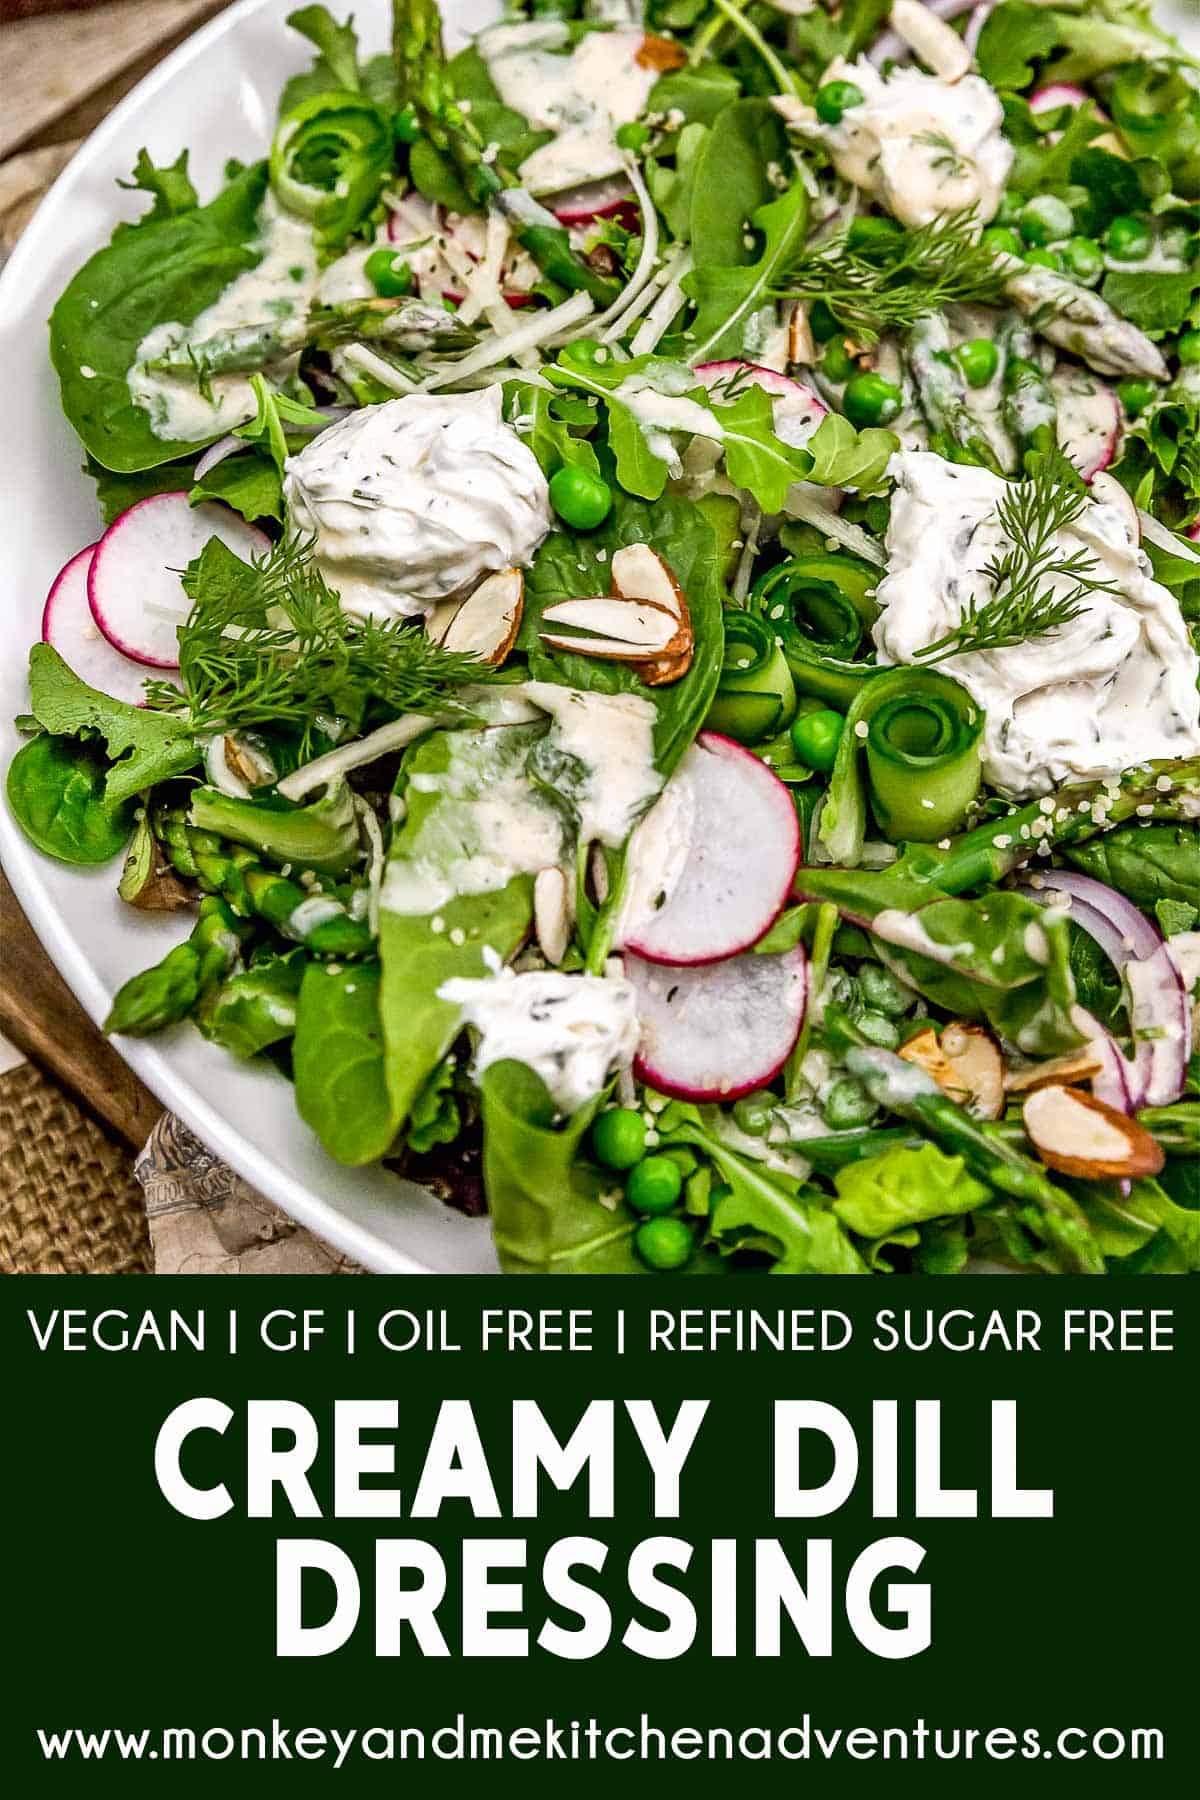 Creamy Dill Dressing with text description